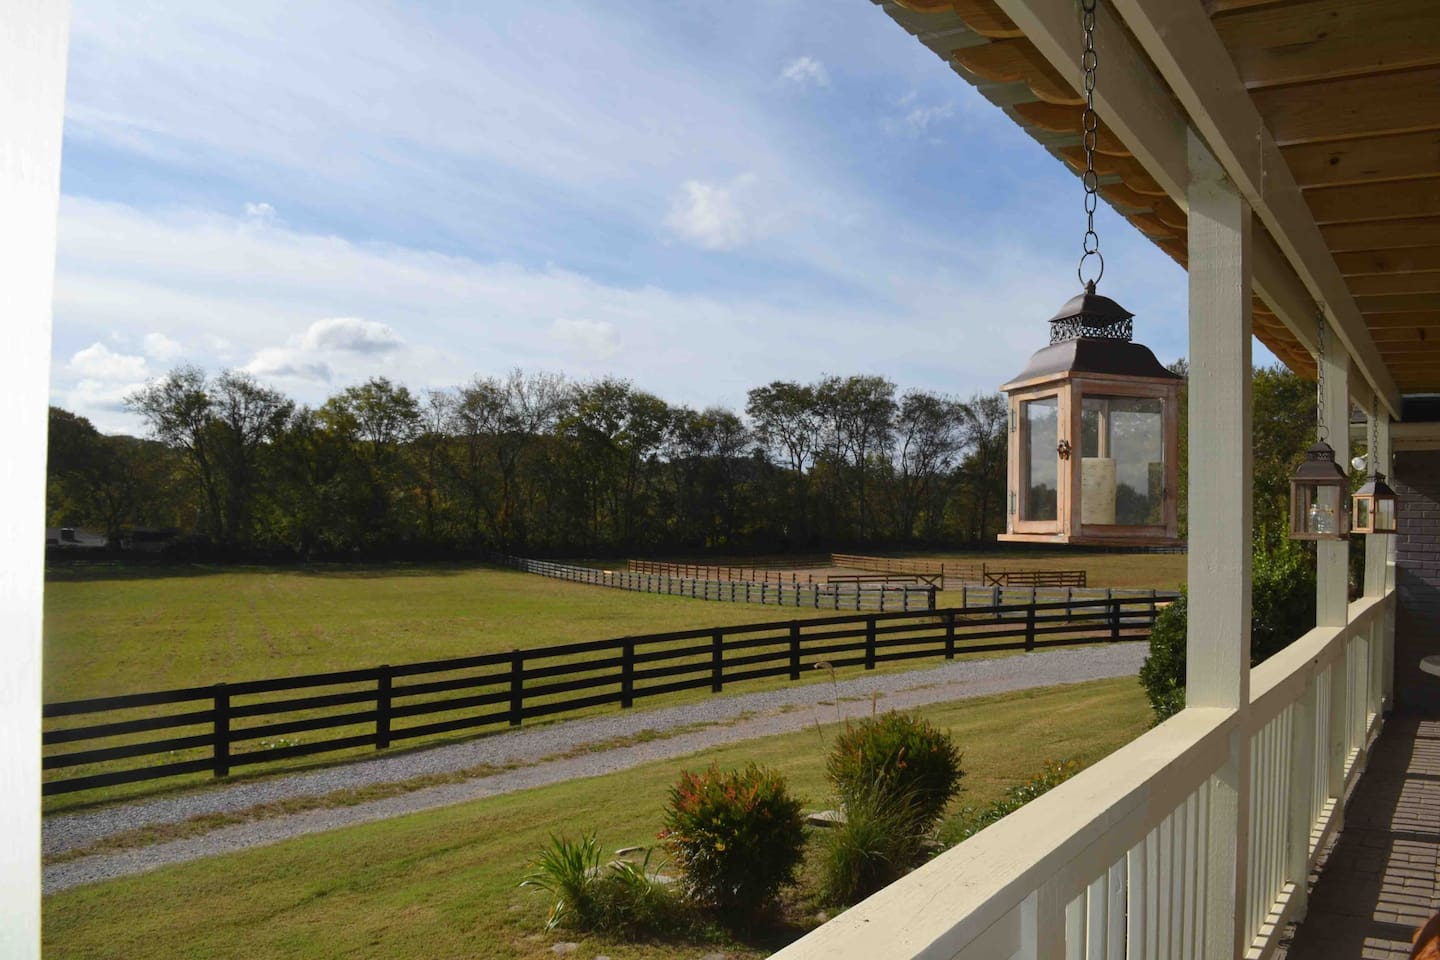 Welcome to Pearls 'n Spurs Luxury Guest Ranch...serene and tranquil but close to EVERYTHING!